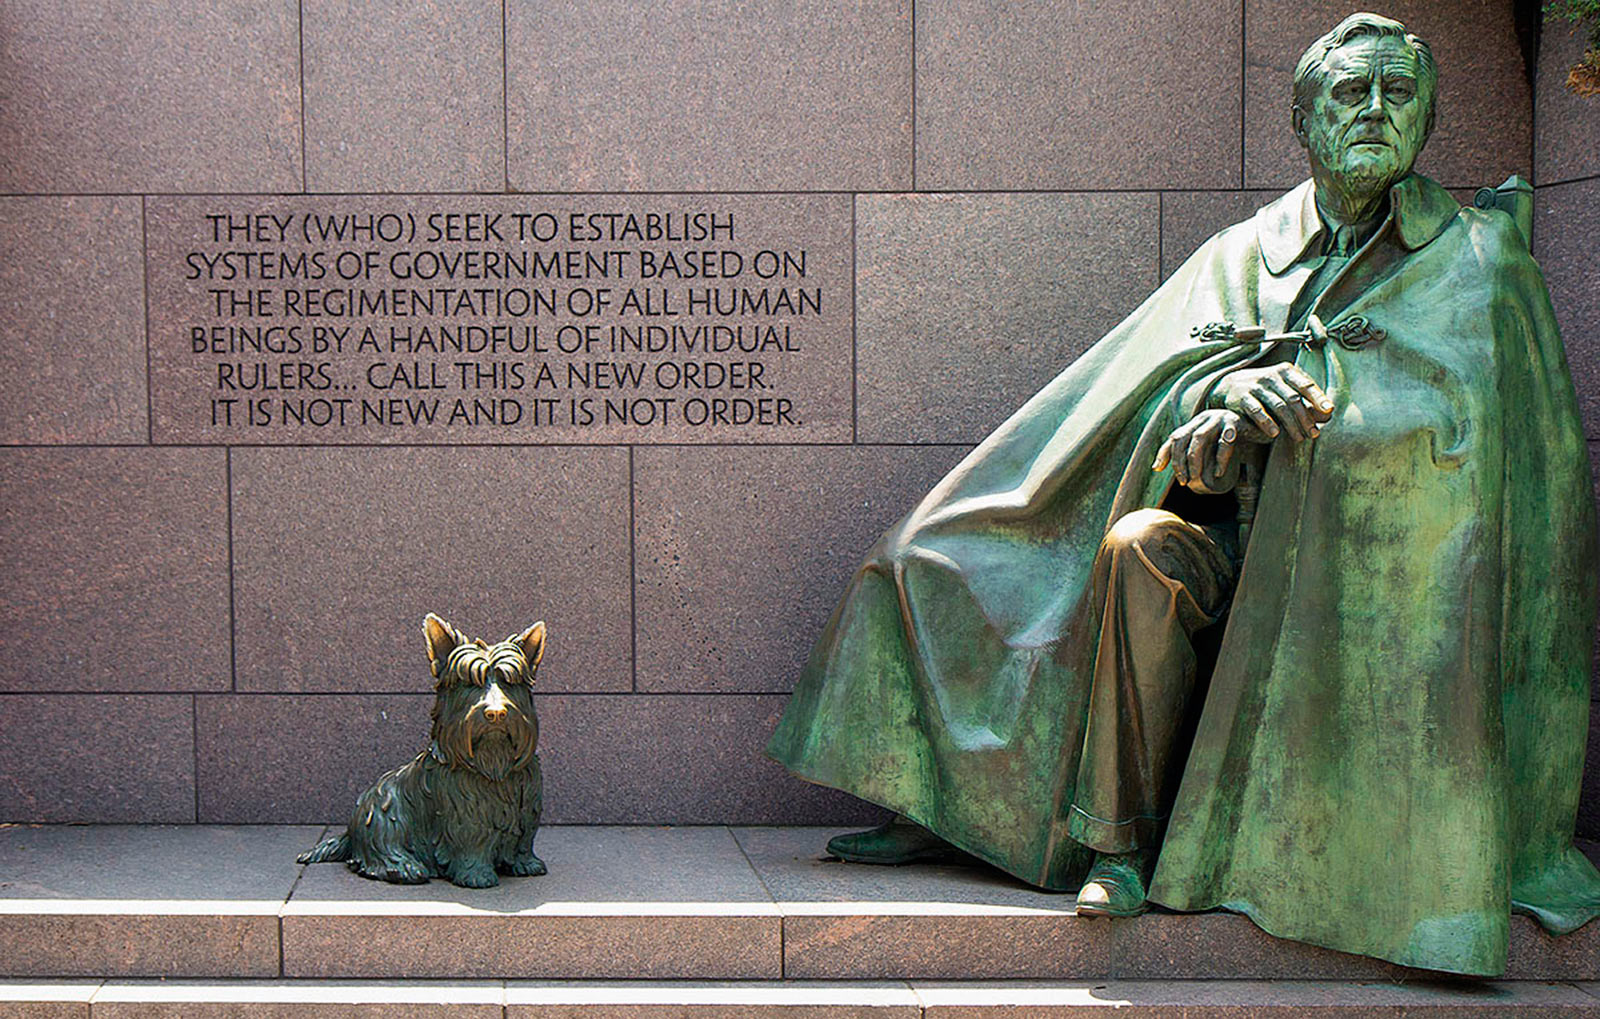 https://s3.us-east-2.amazonaws.com/withjamesbarr/genres/fdr-statue.jpg